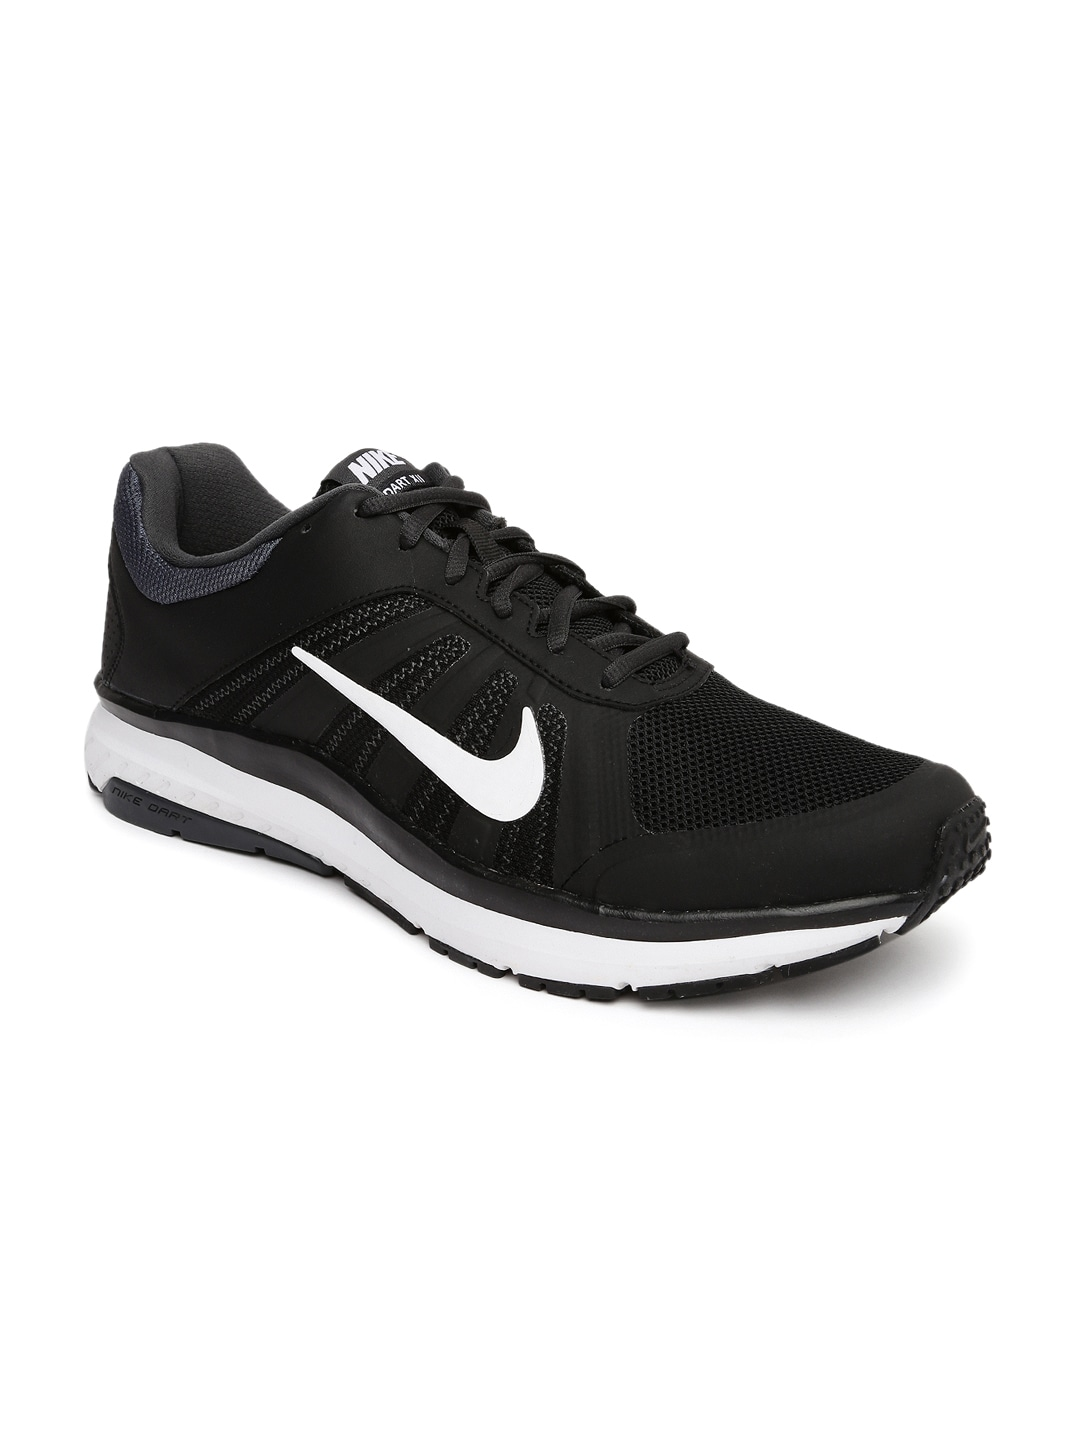 9eceb21e172 Nike Shoes - Buy Nike Shoes for Men   Women Online